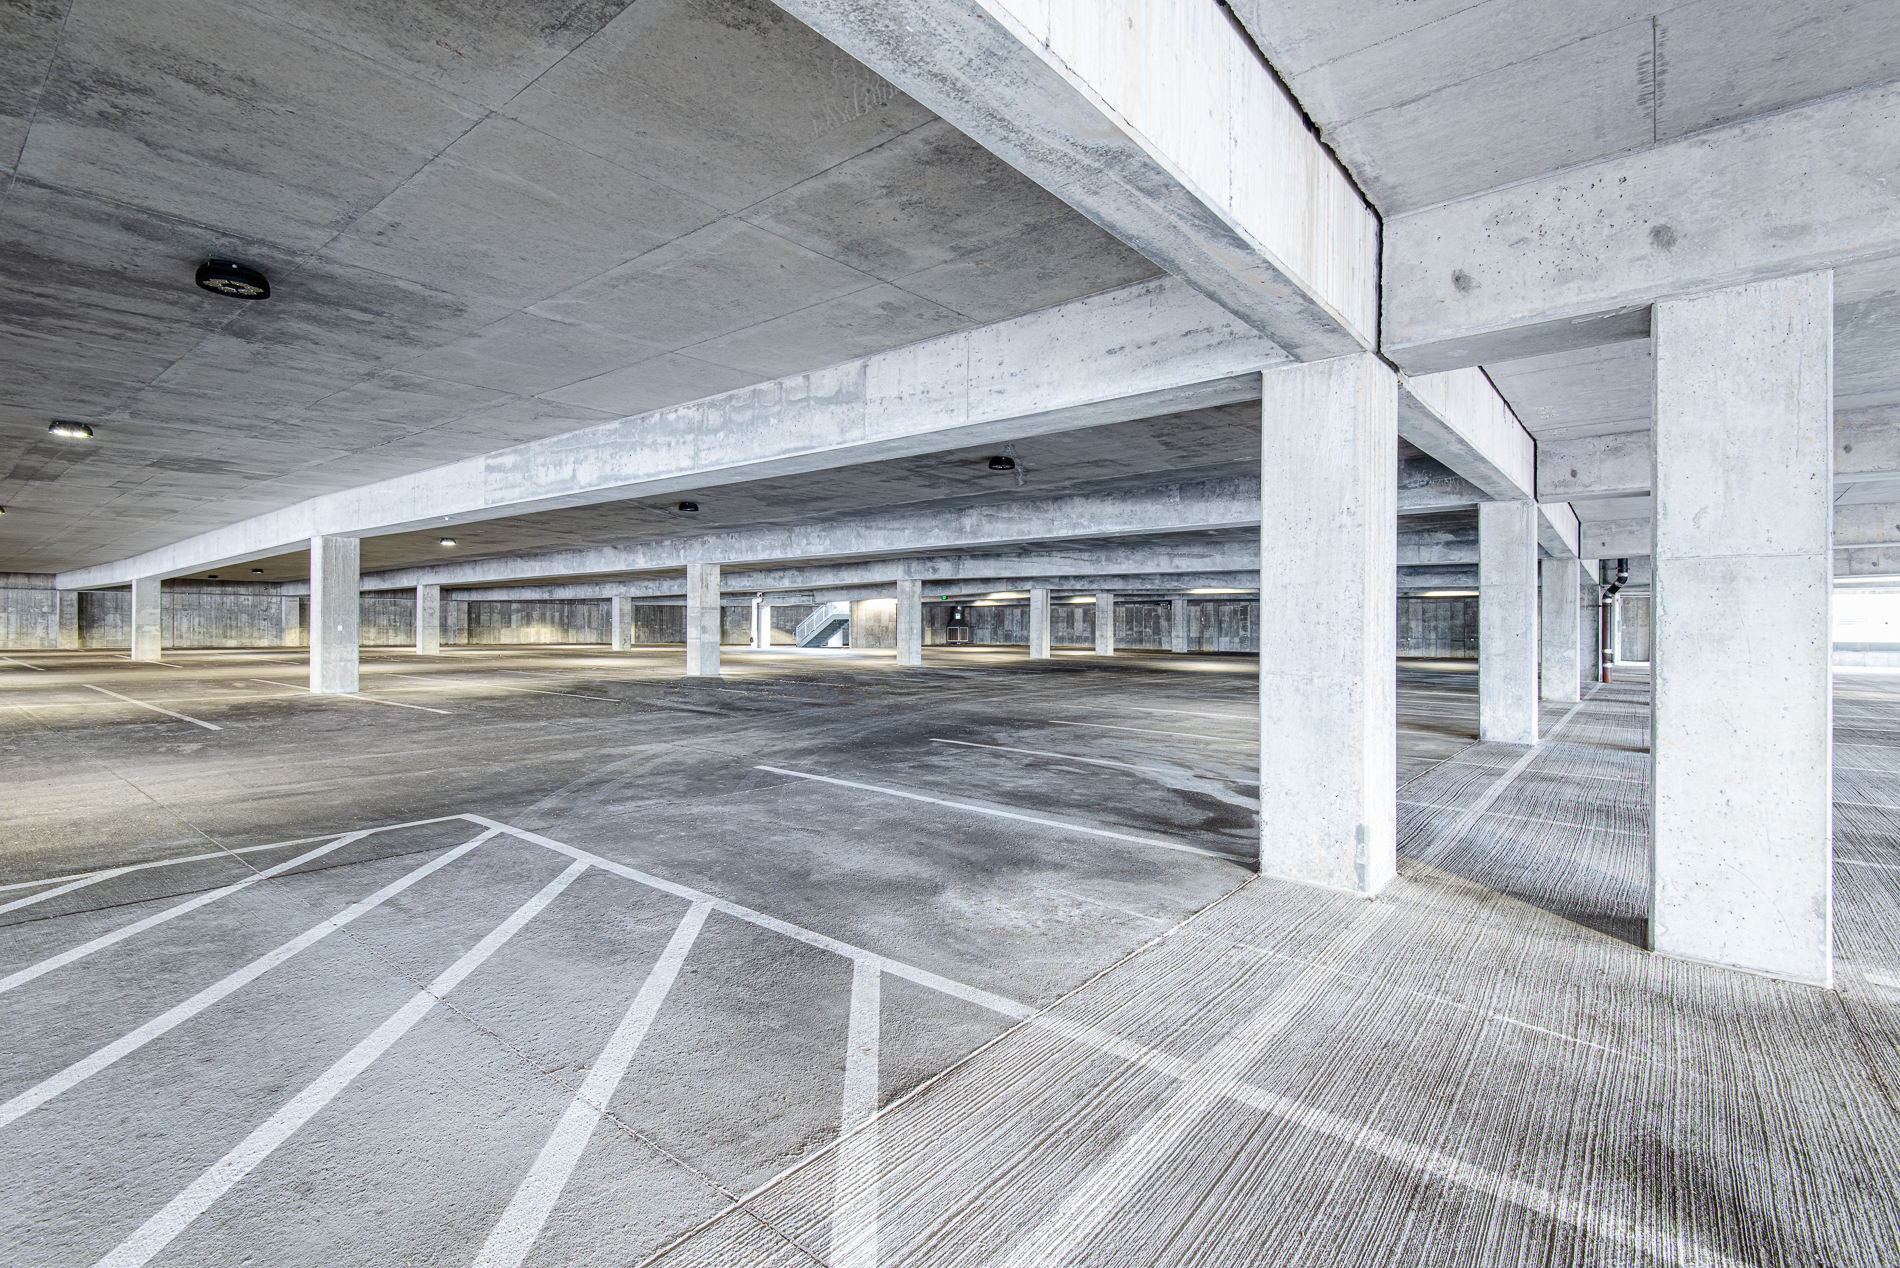 Heart of the City Parking Structure